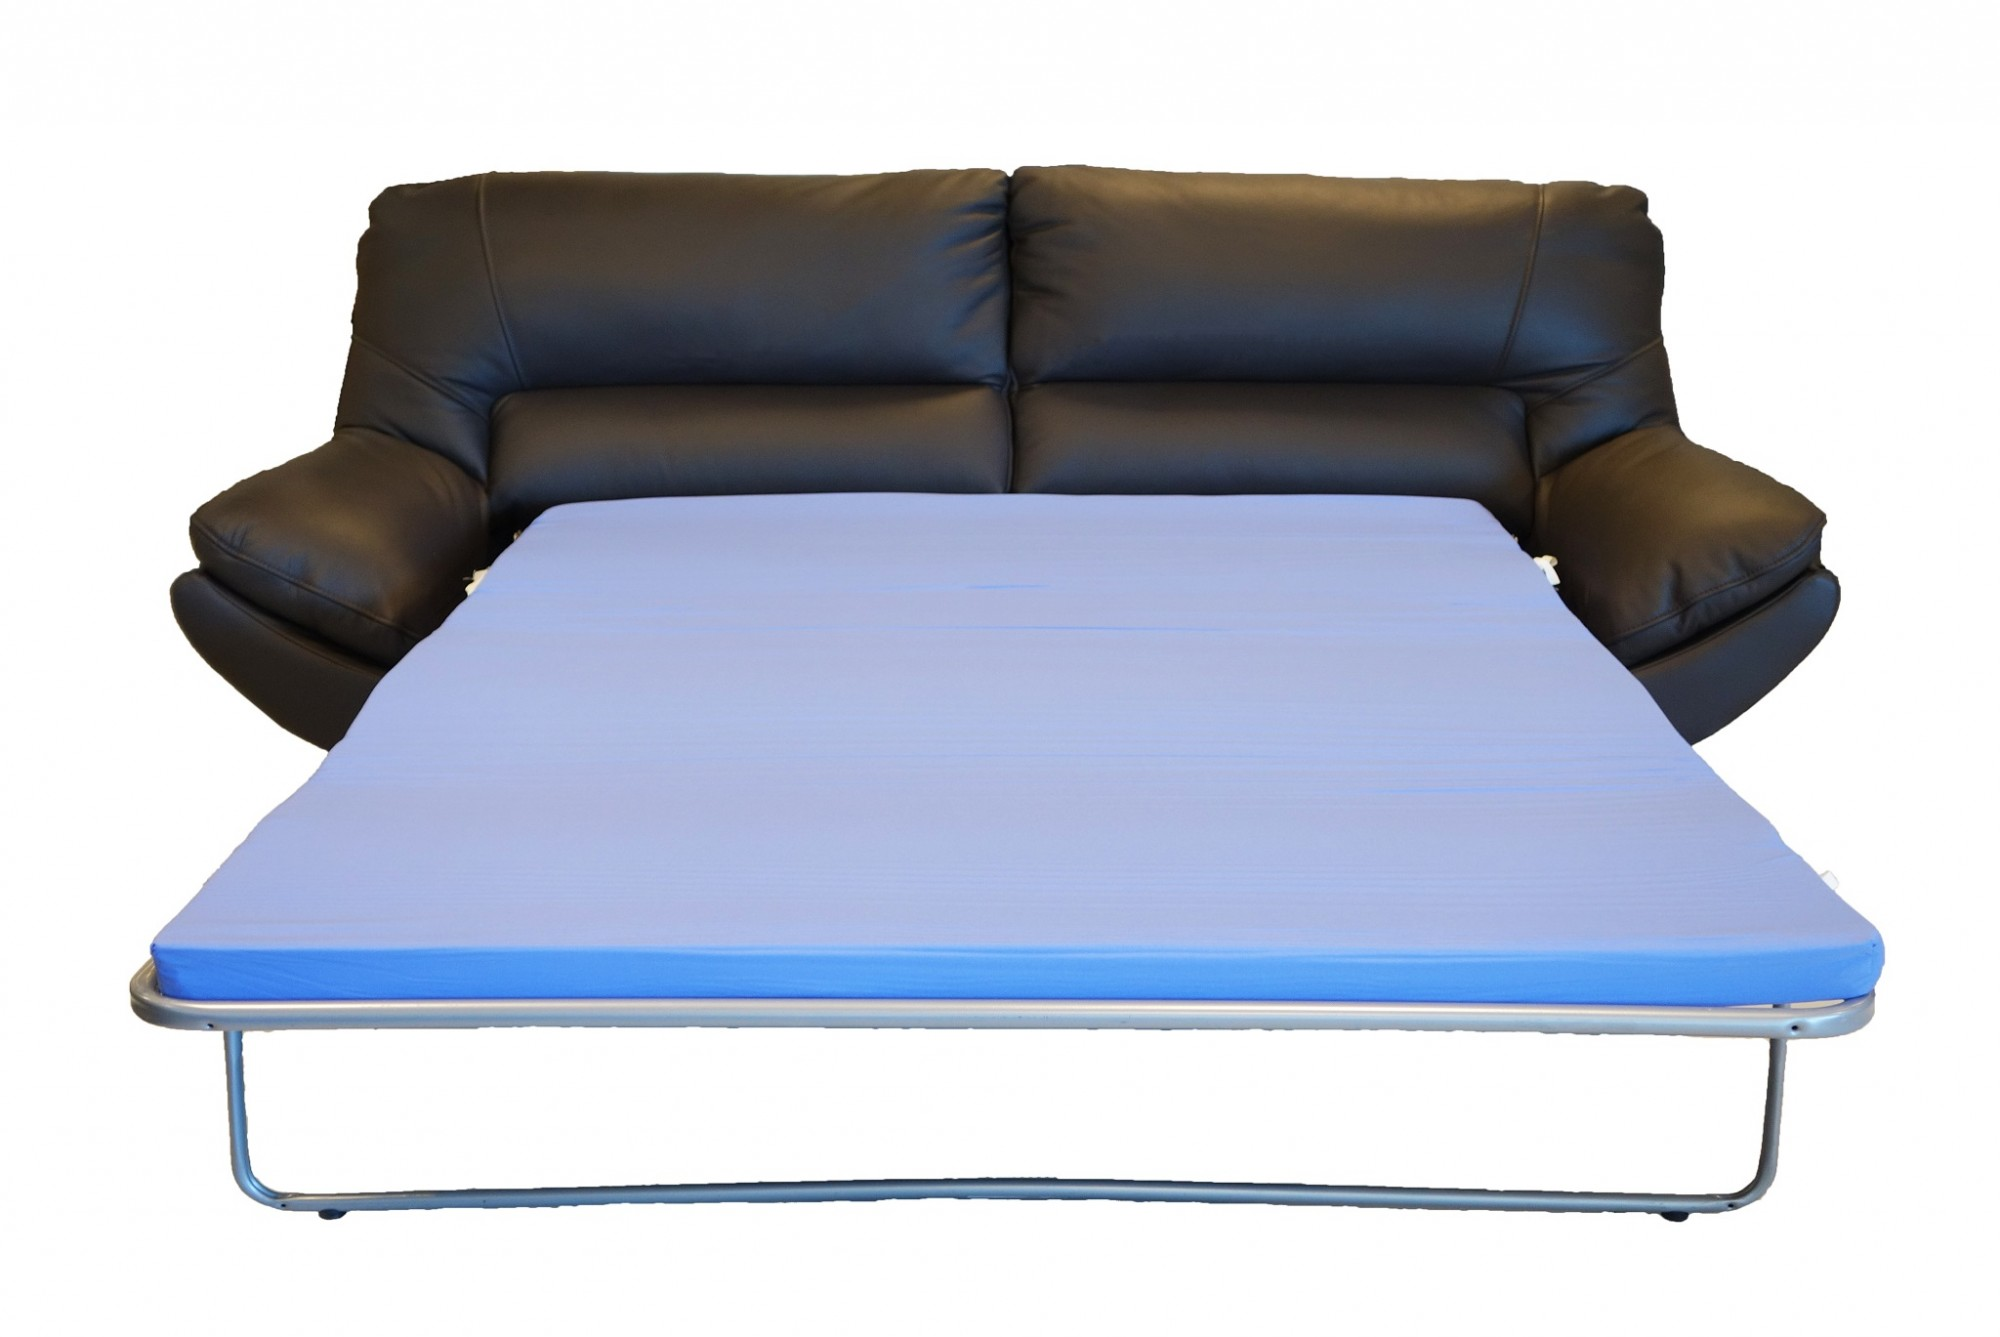 3 seater sofa beds tiendas de sofas madrid sur silica seat bed luxury leather modern glossyhome